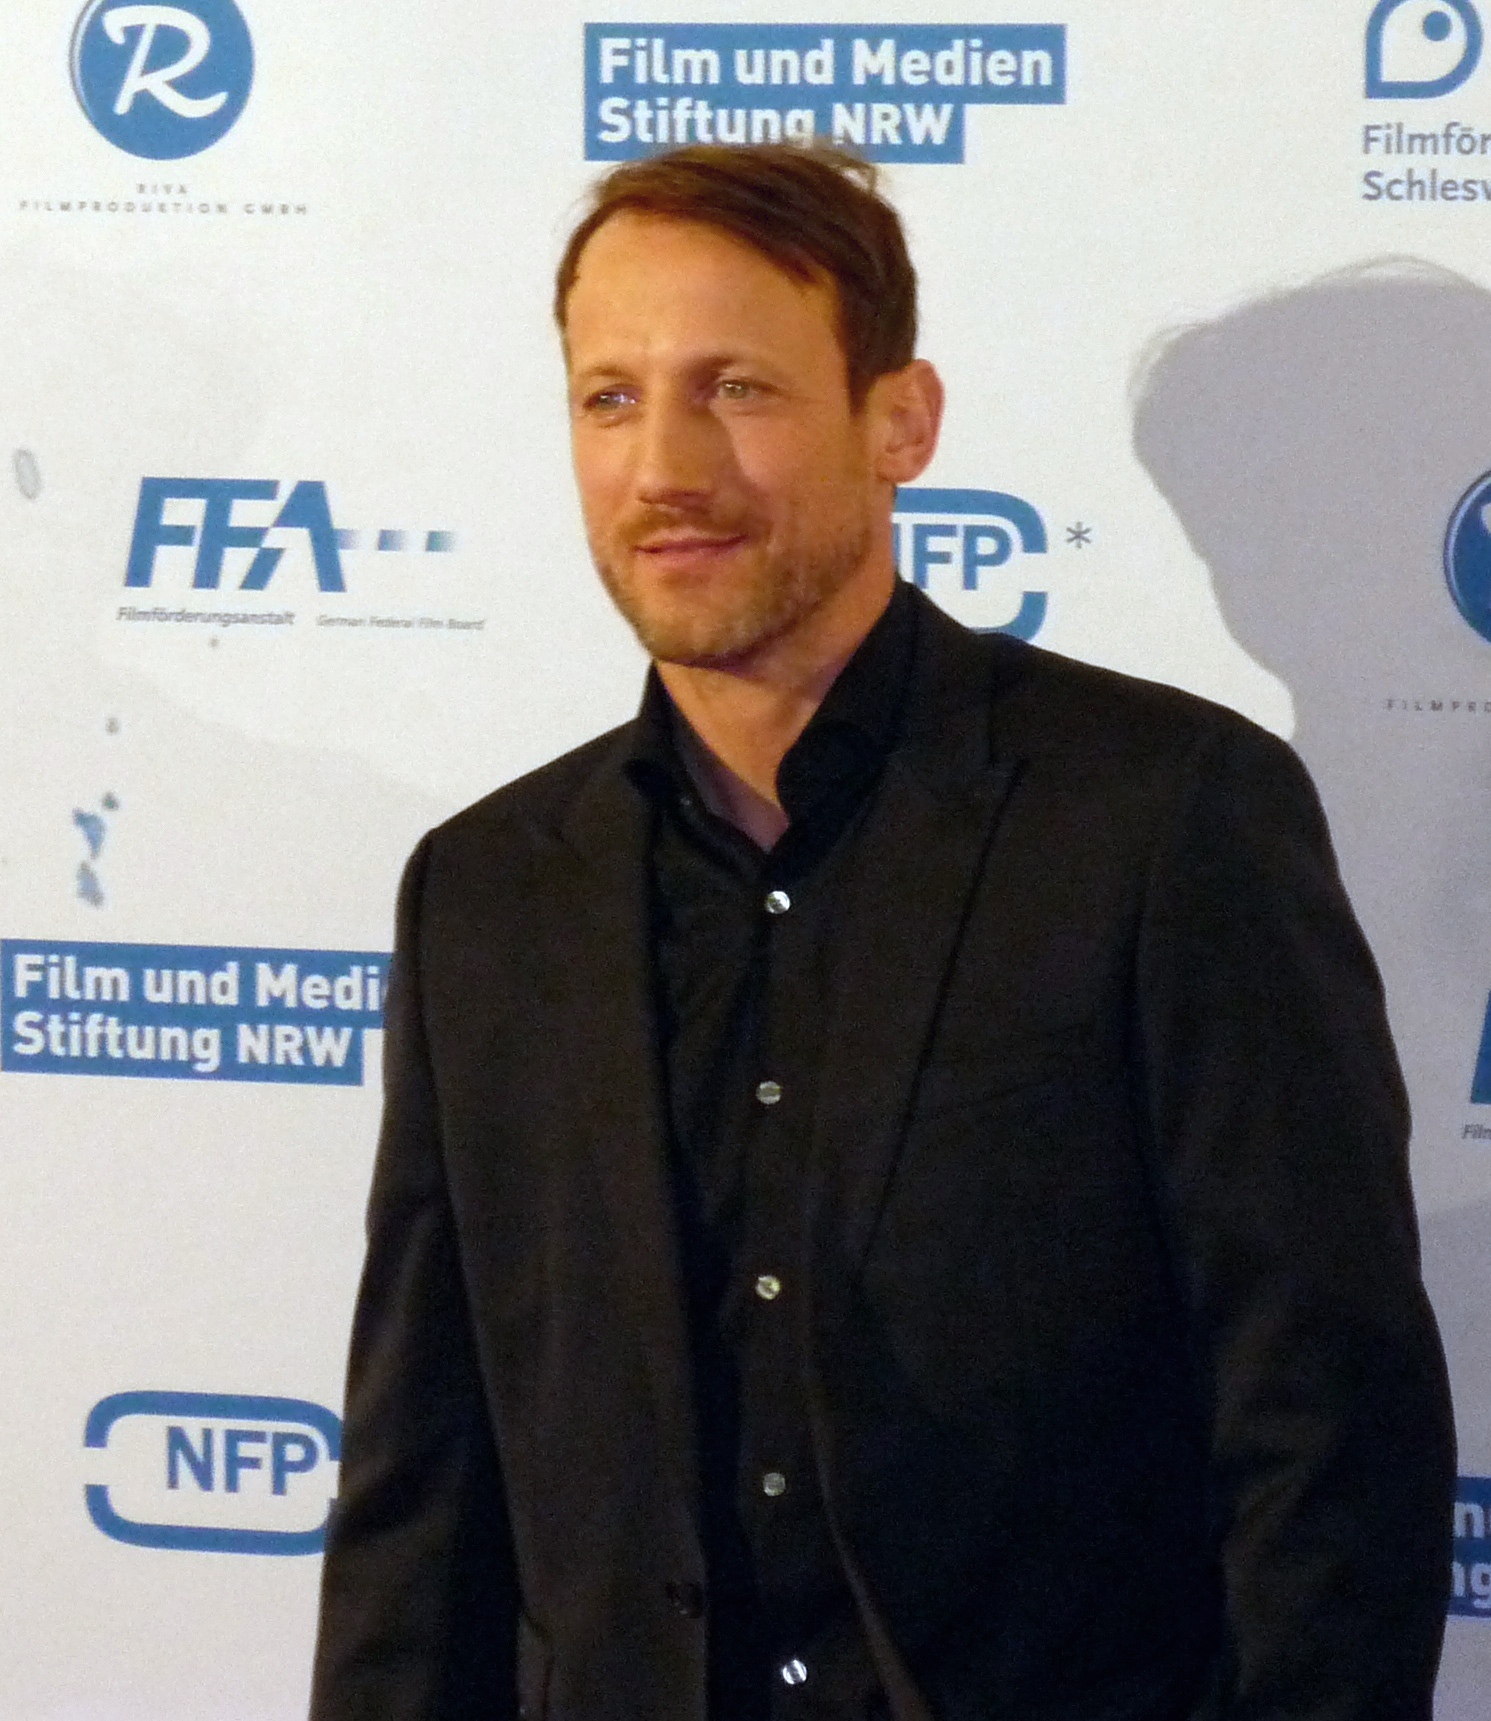 The 51-year old son of father (?) and mother(?) Wotan Wilke Möhring in 2018 photo. Wotan Wilke Möhring earned a  million dollar salary - leaving the net worth at 1.5 million in 2018